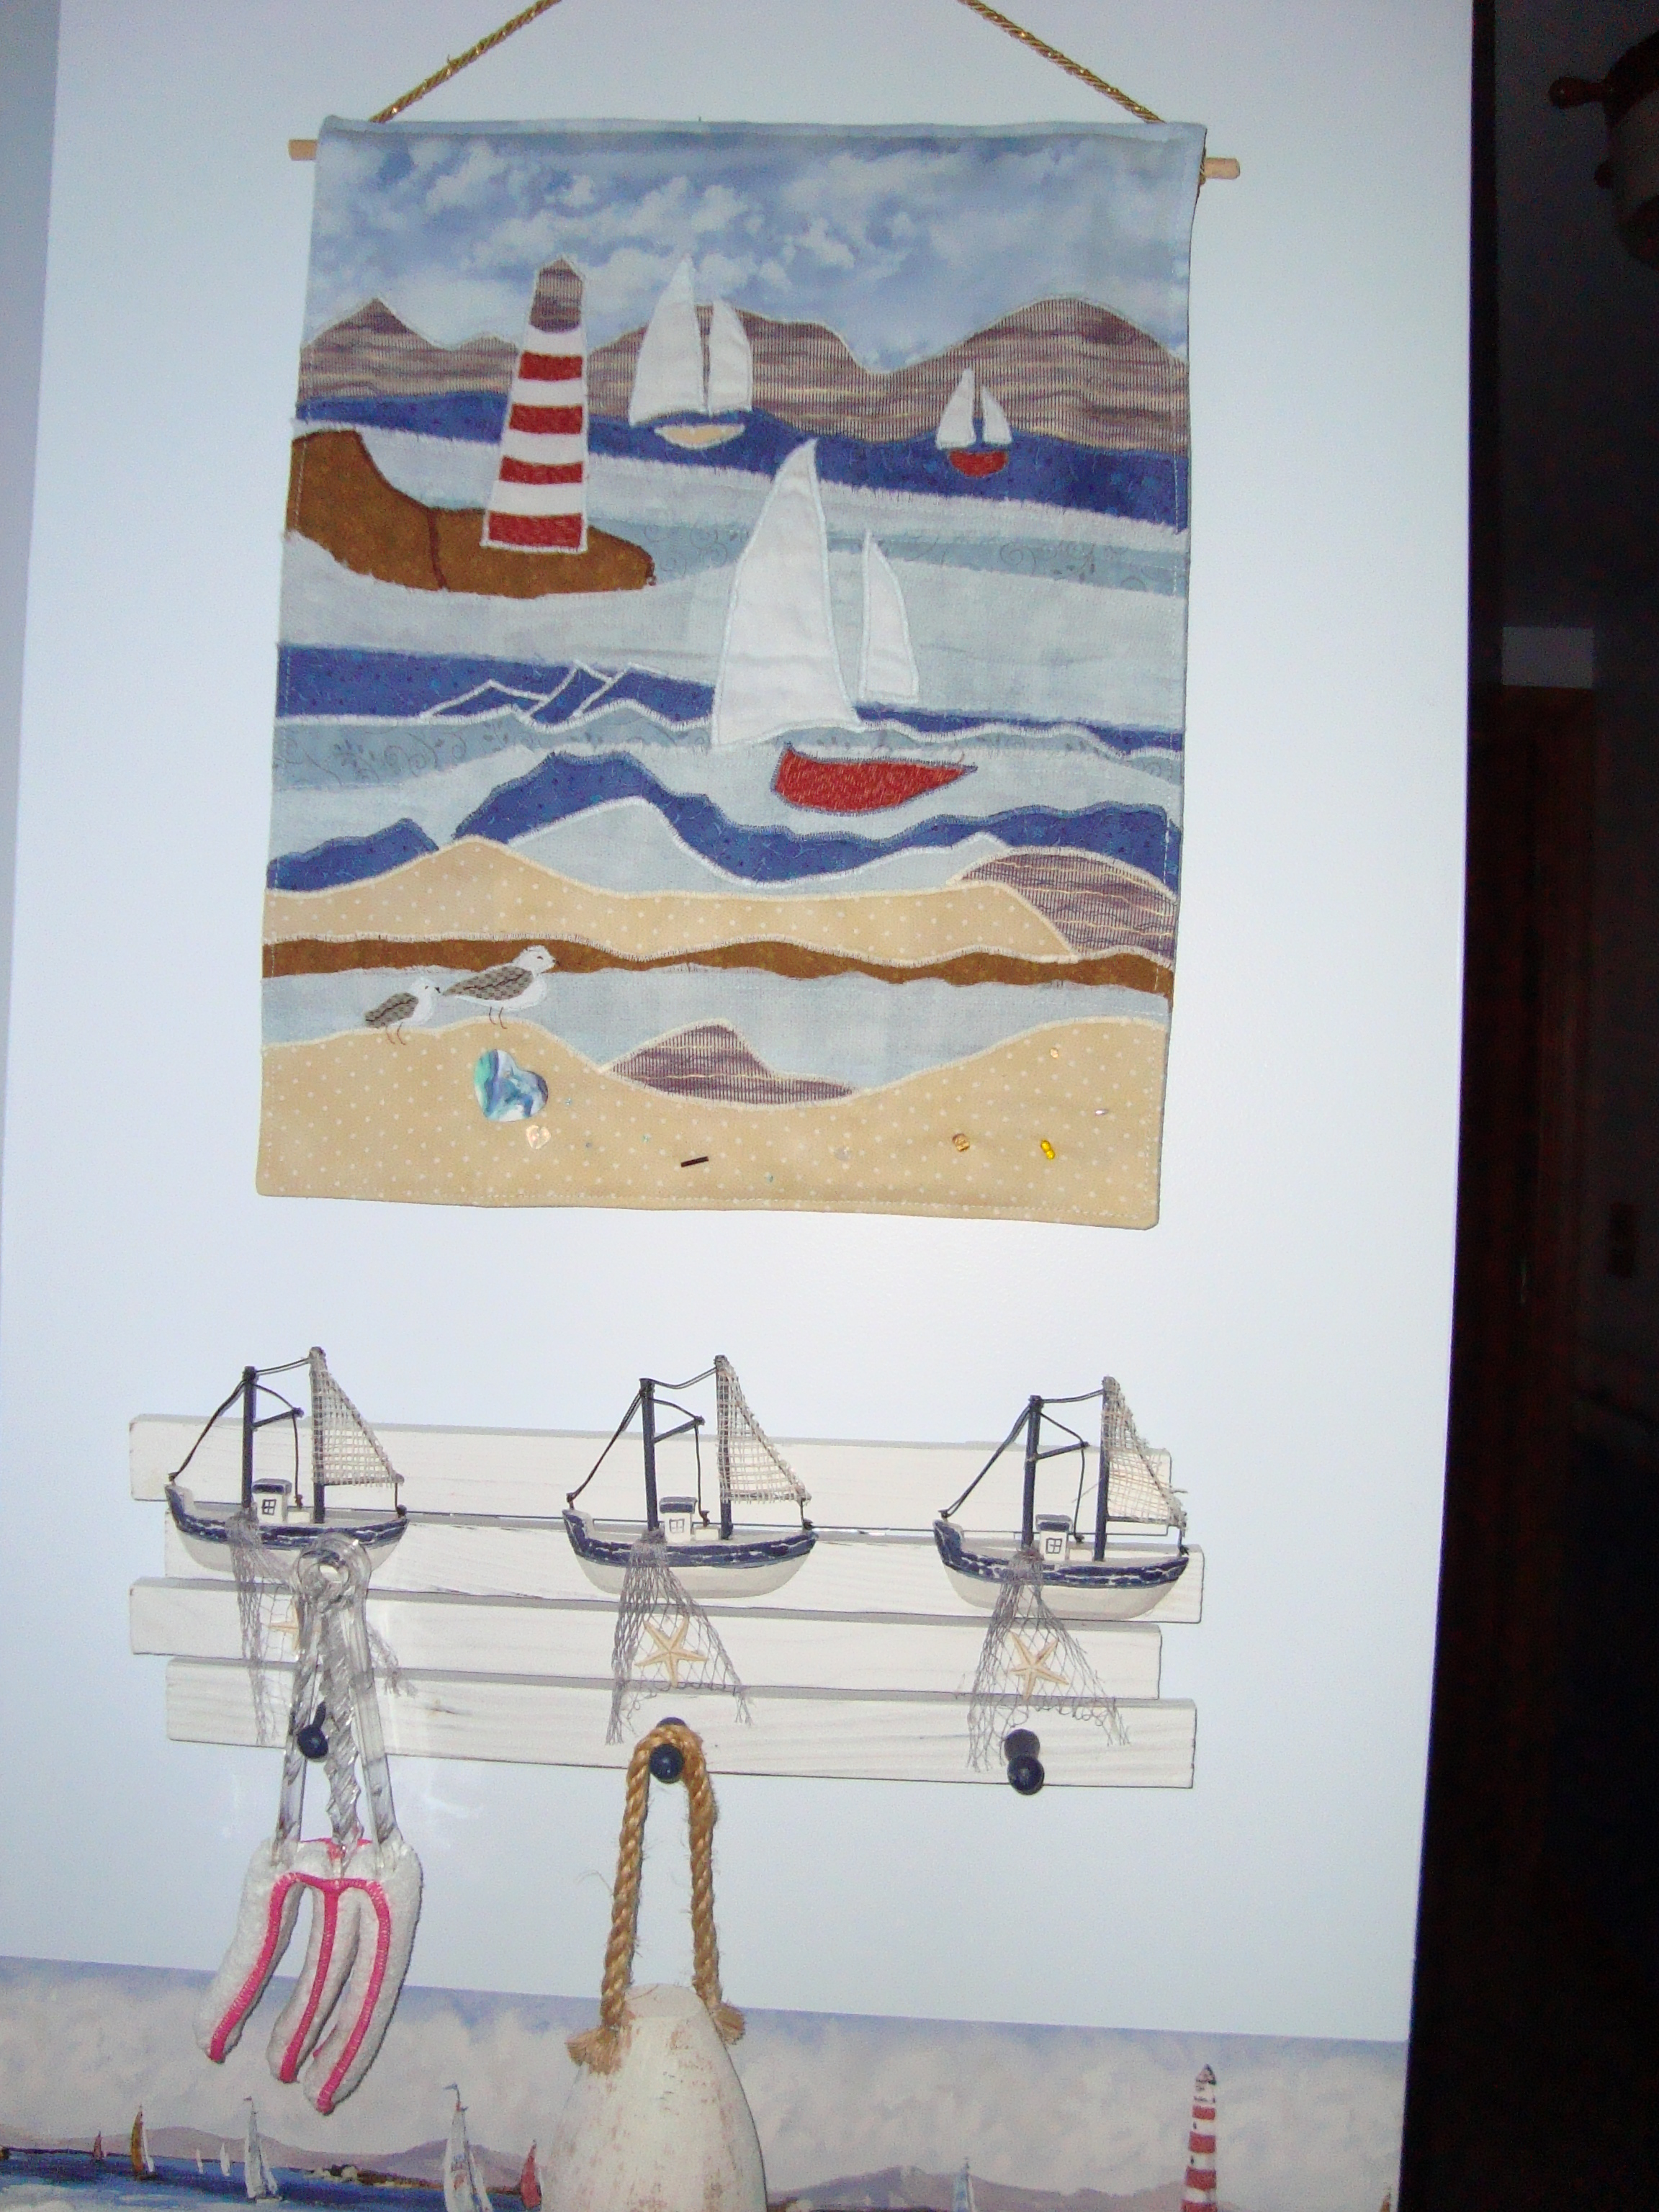 the wall hanging